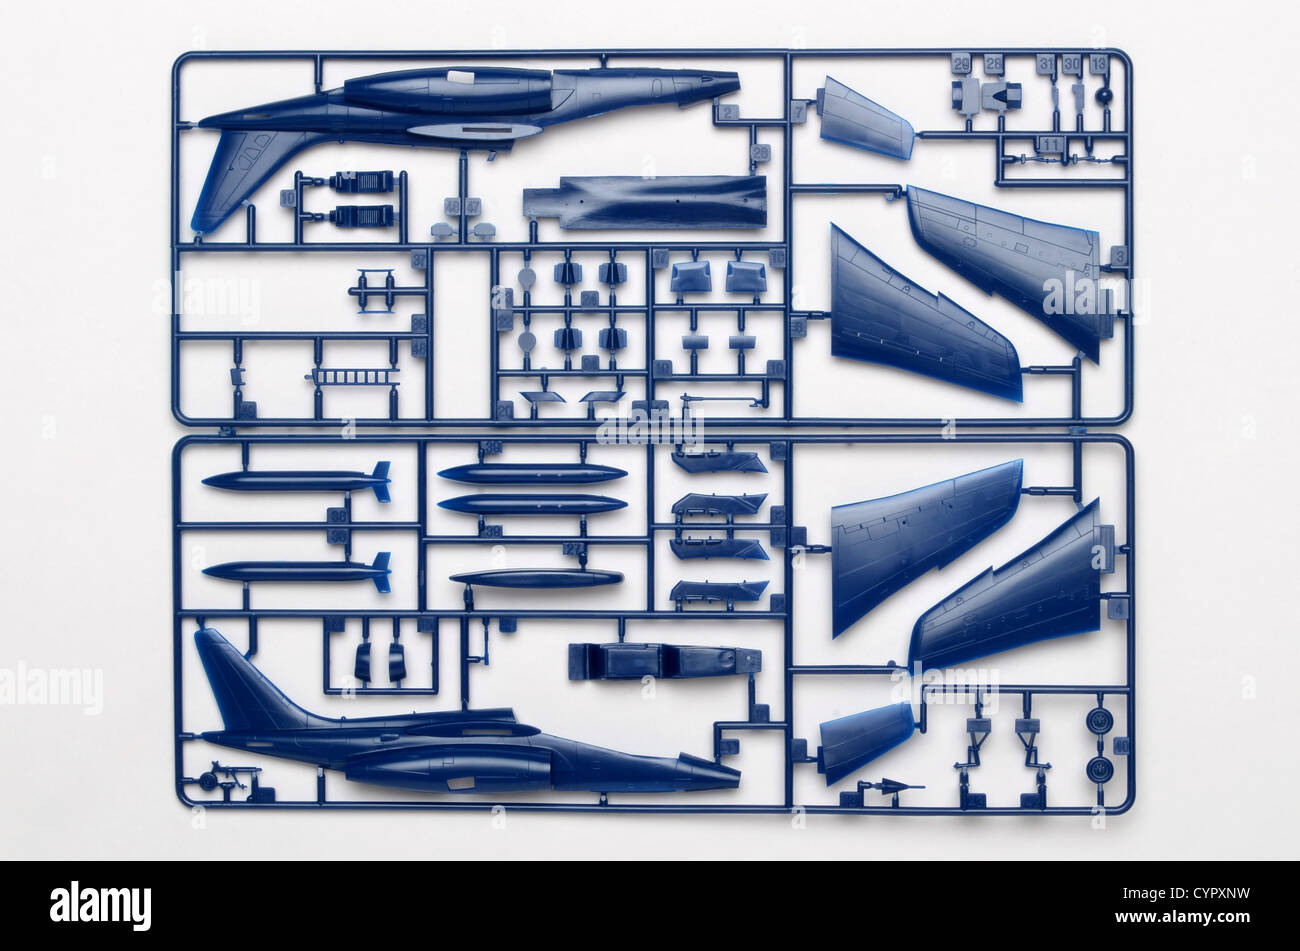 Fujimi 1/72 scale Alpha Jet injection moulded polystyrene plastic model aircraft construction kit parts on sprues - Stock Image